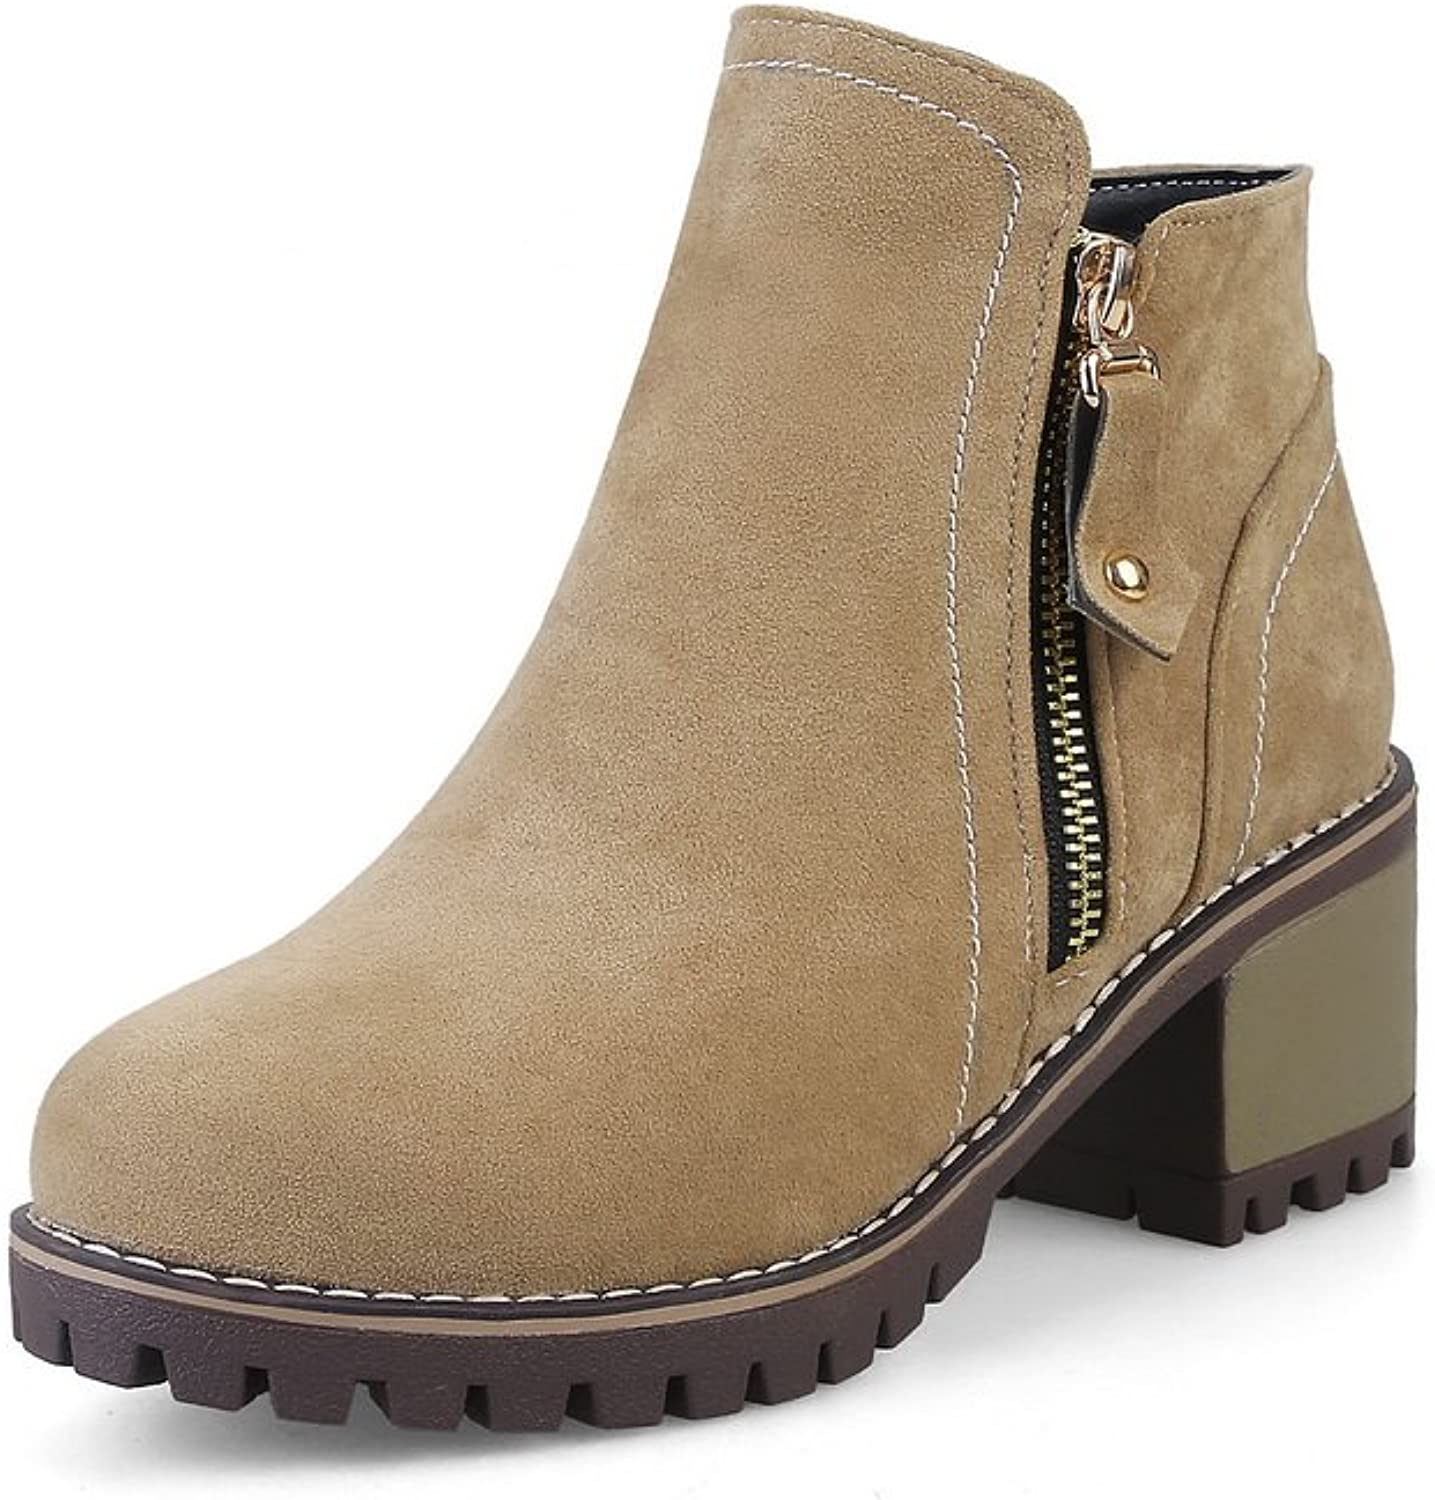 1TO9 Womens Boots Closed-Toe Zip Heeled Warm Lining Rubber Not_Water_Resistant Hard Ground Nubuck Slip-Resistant Fashion Urethane Boots MNS02556